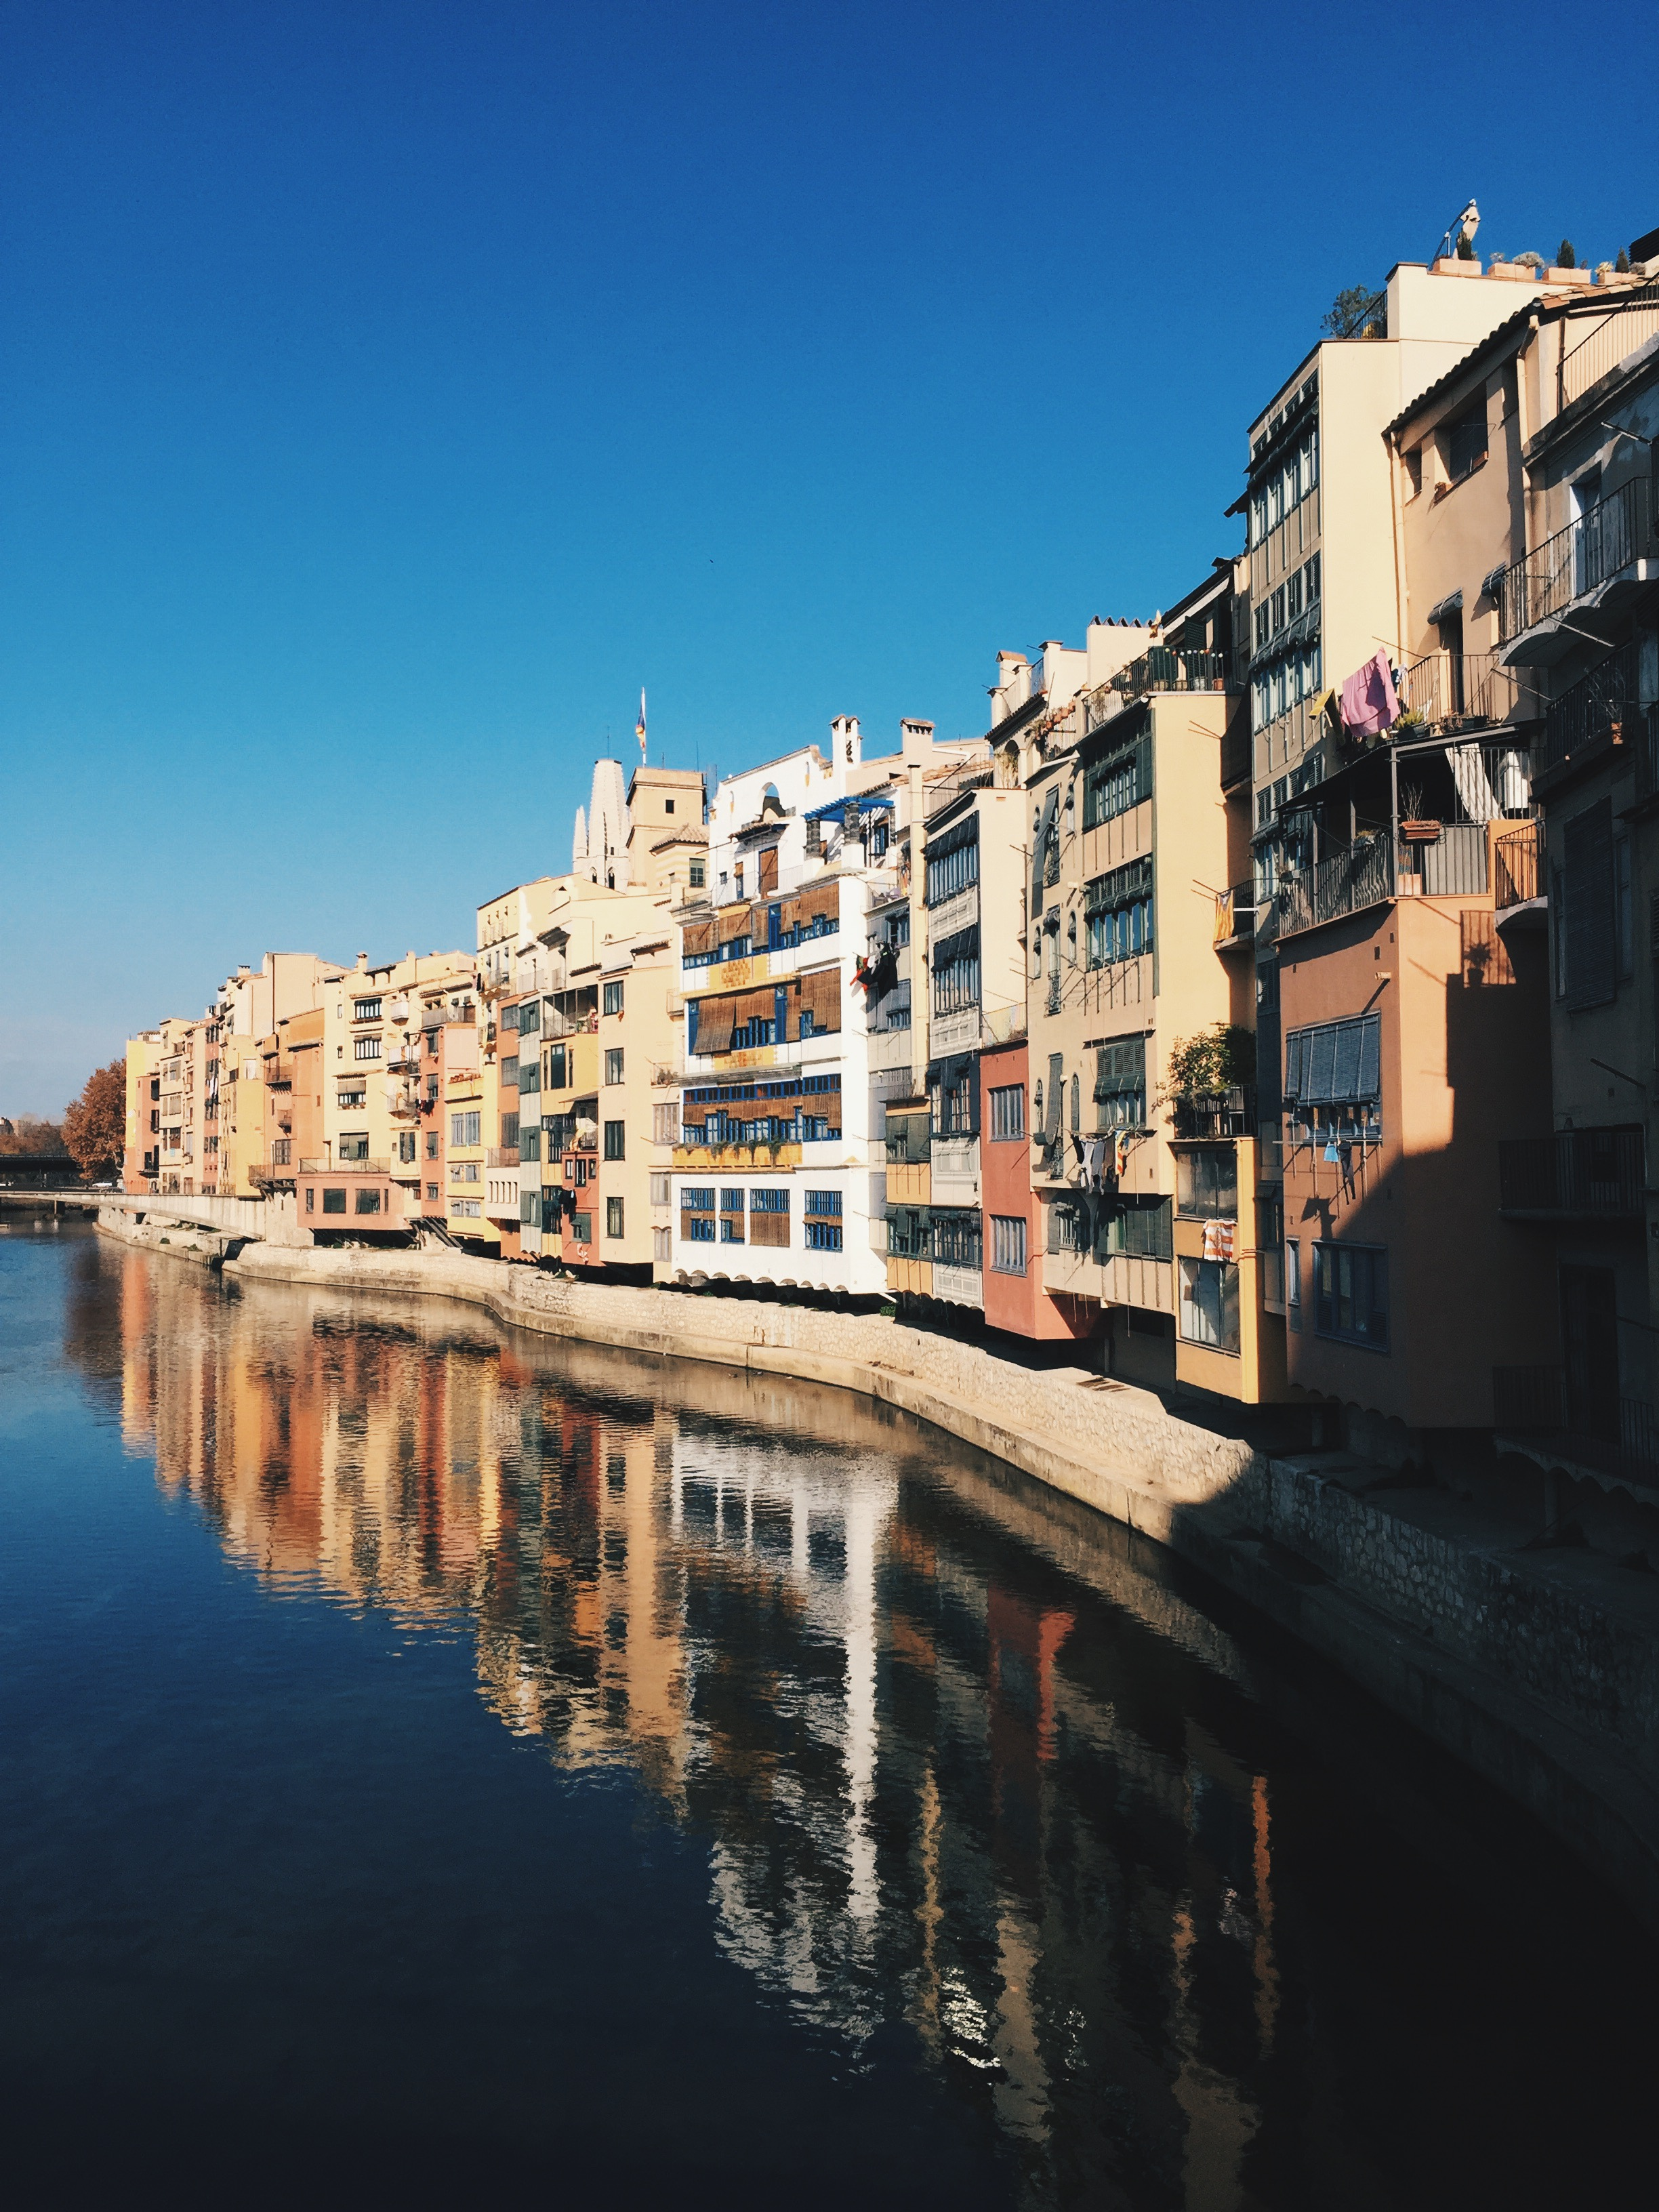 The postcard view of Girona